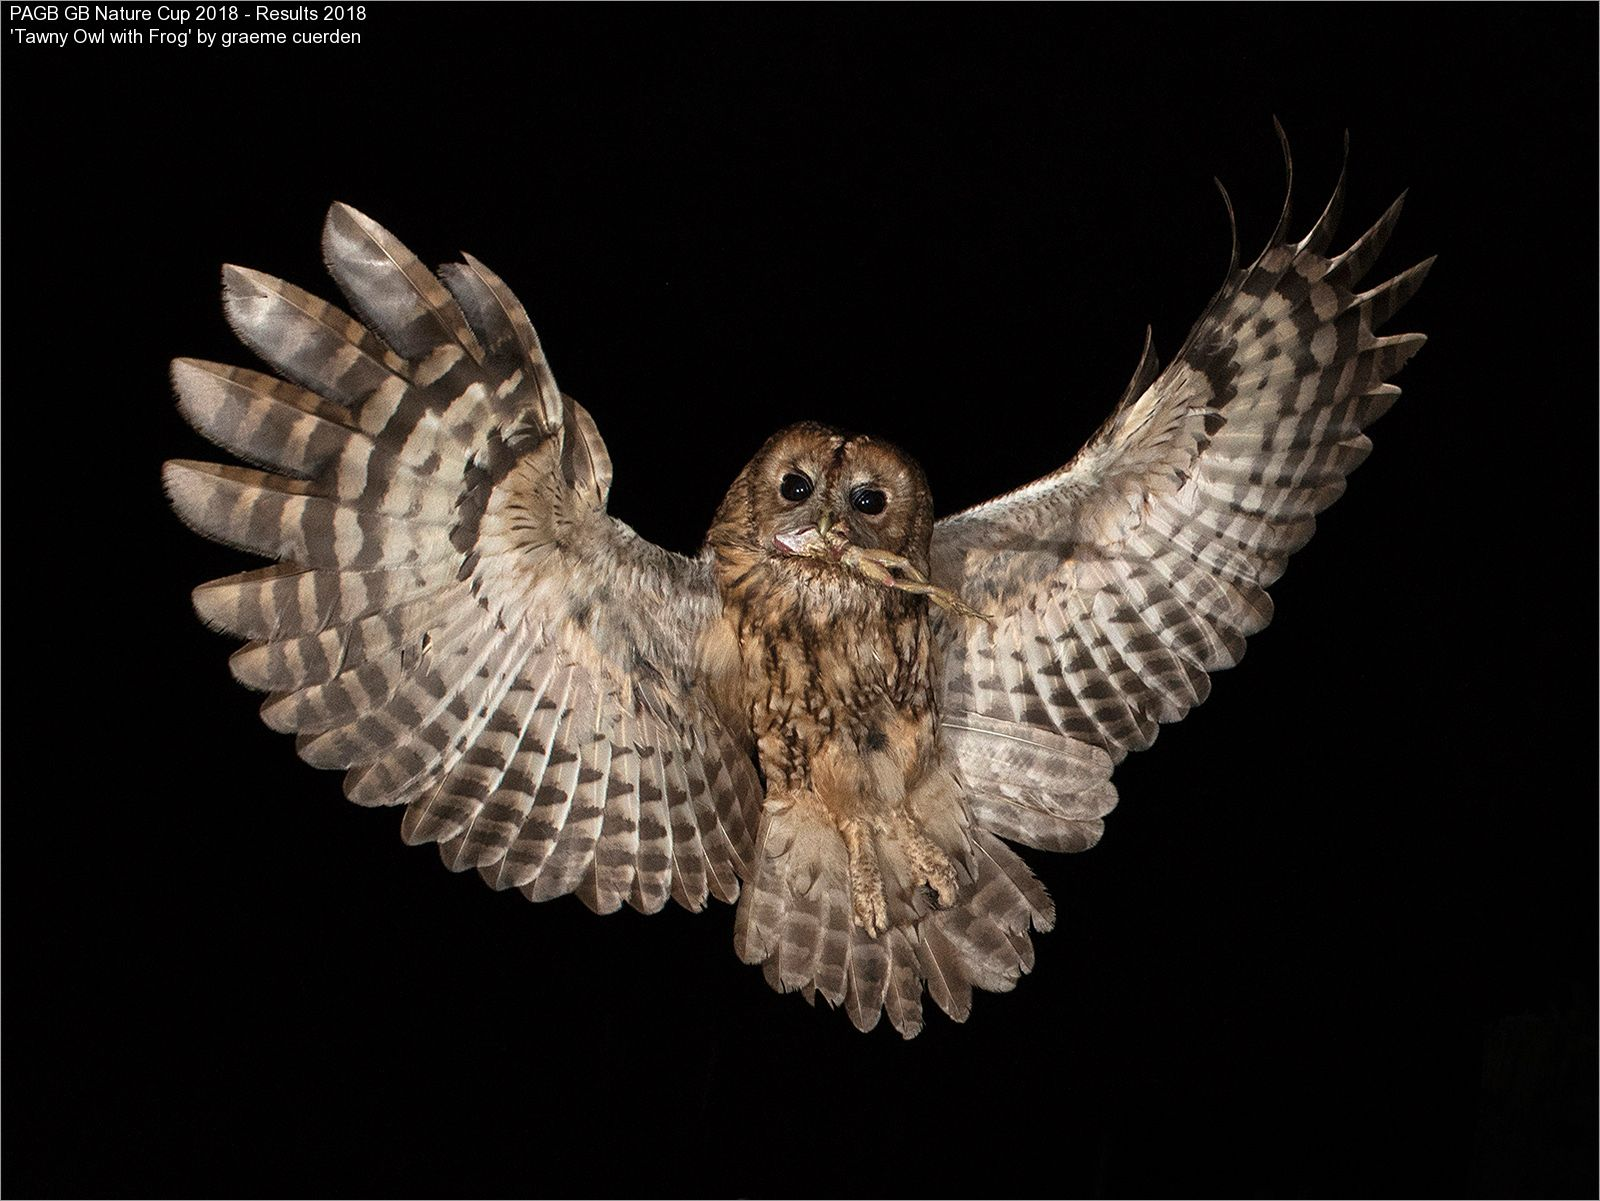 9381_graeme cuerden_Tawny Owl with Frog